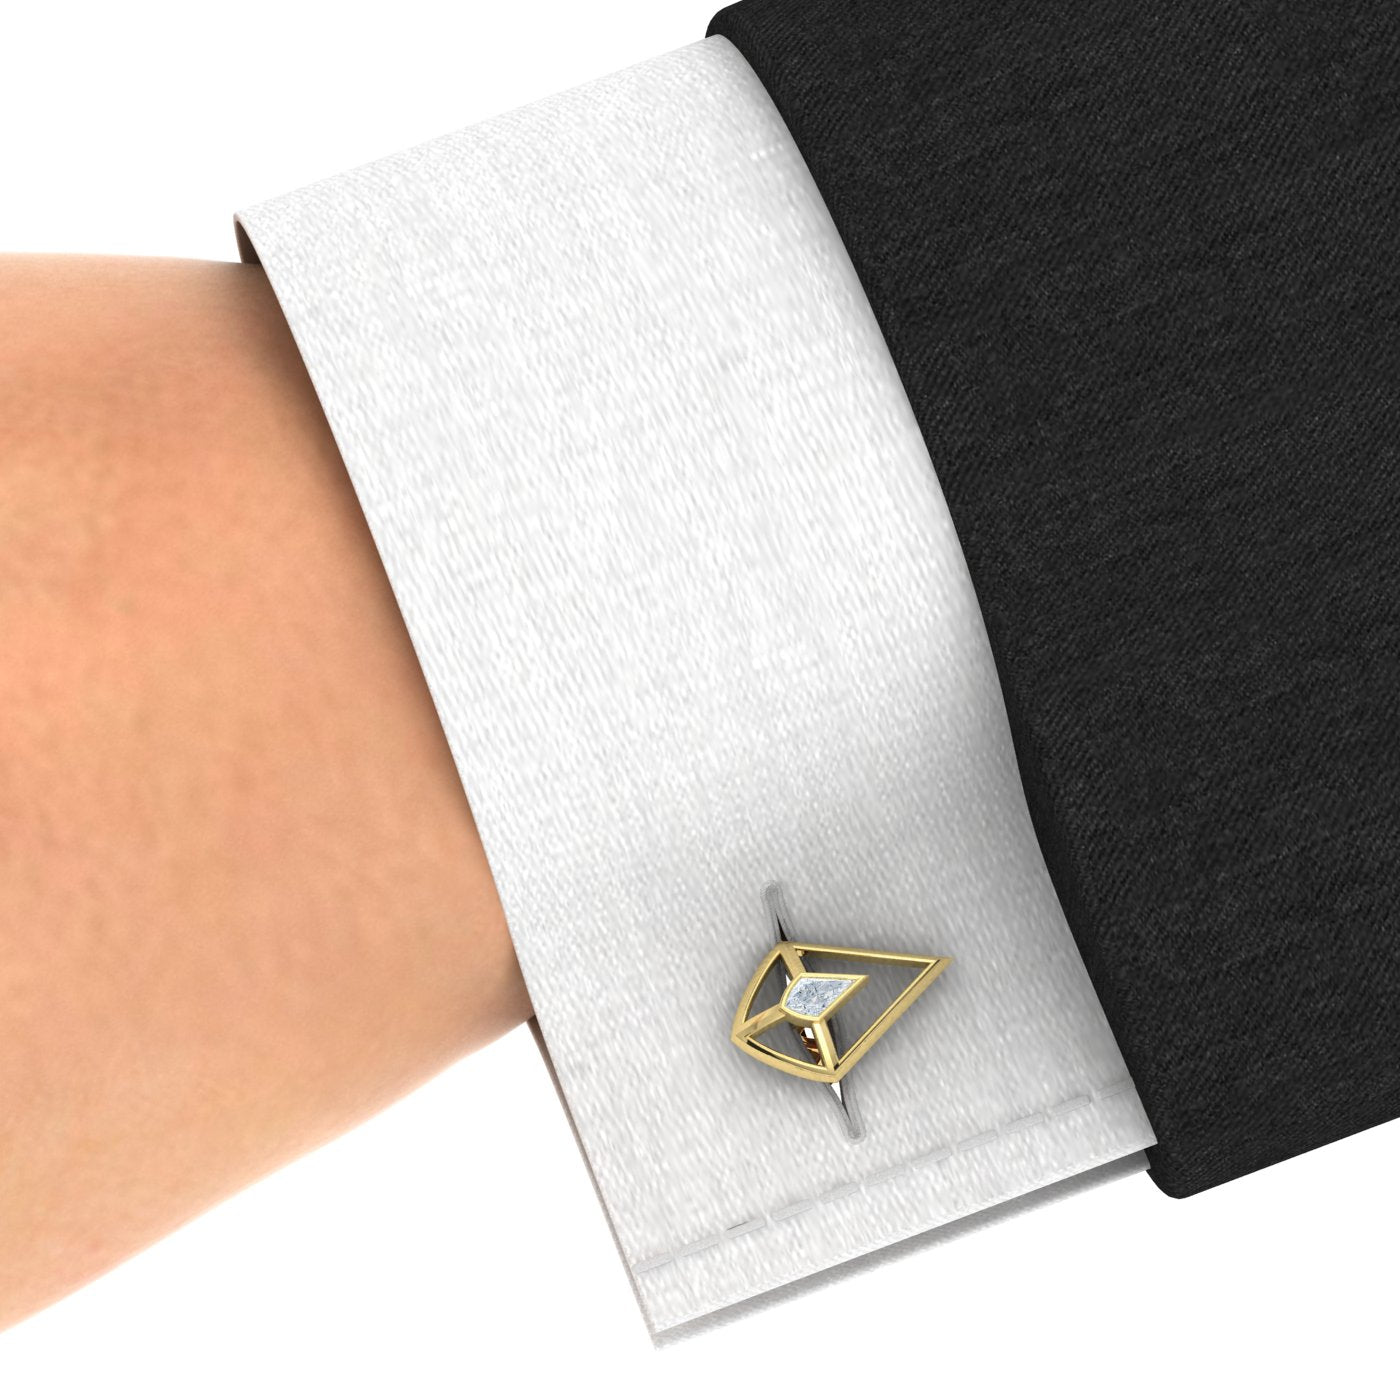 Kite Diamond Gold Cufflinks by Alice Herald